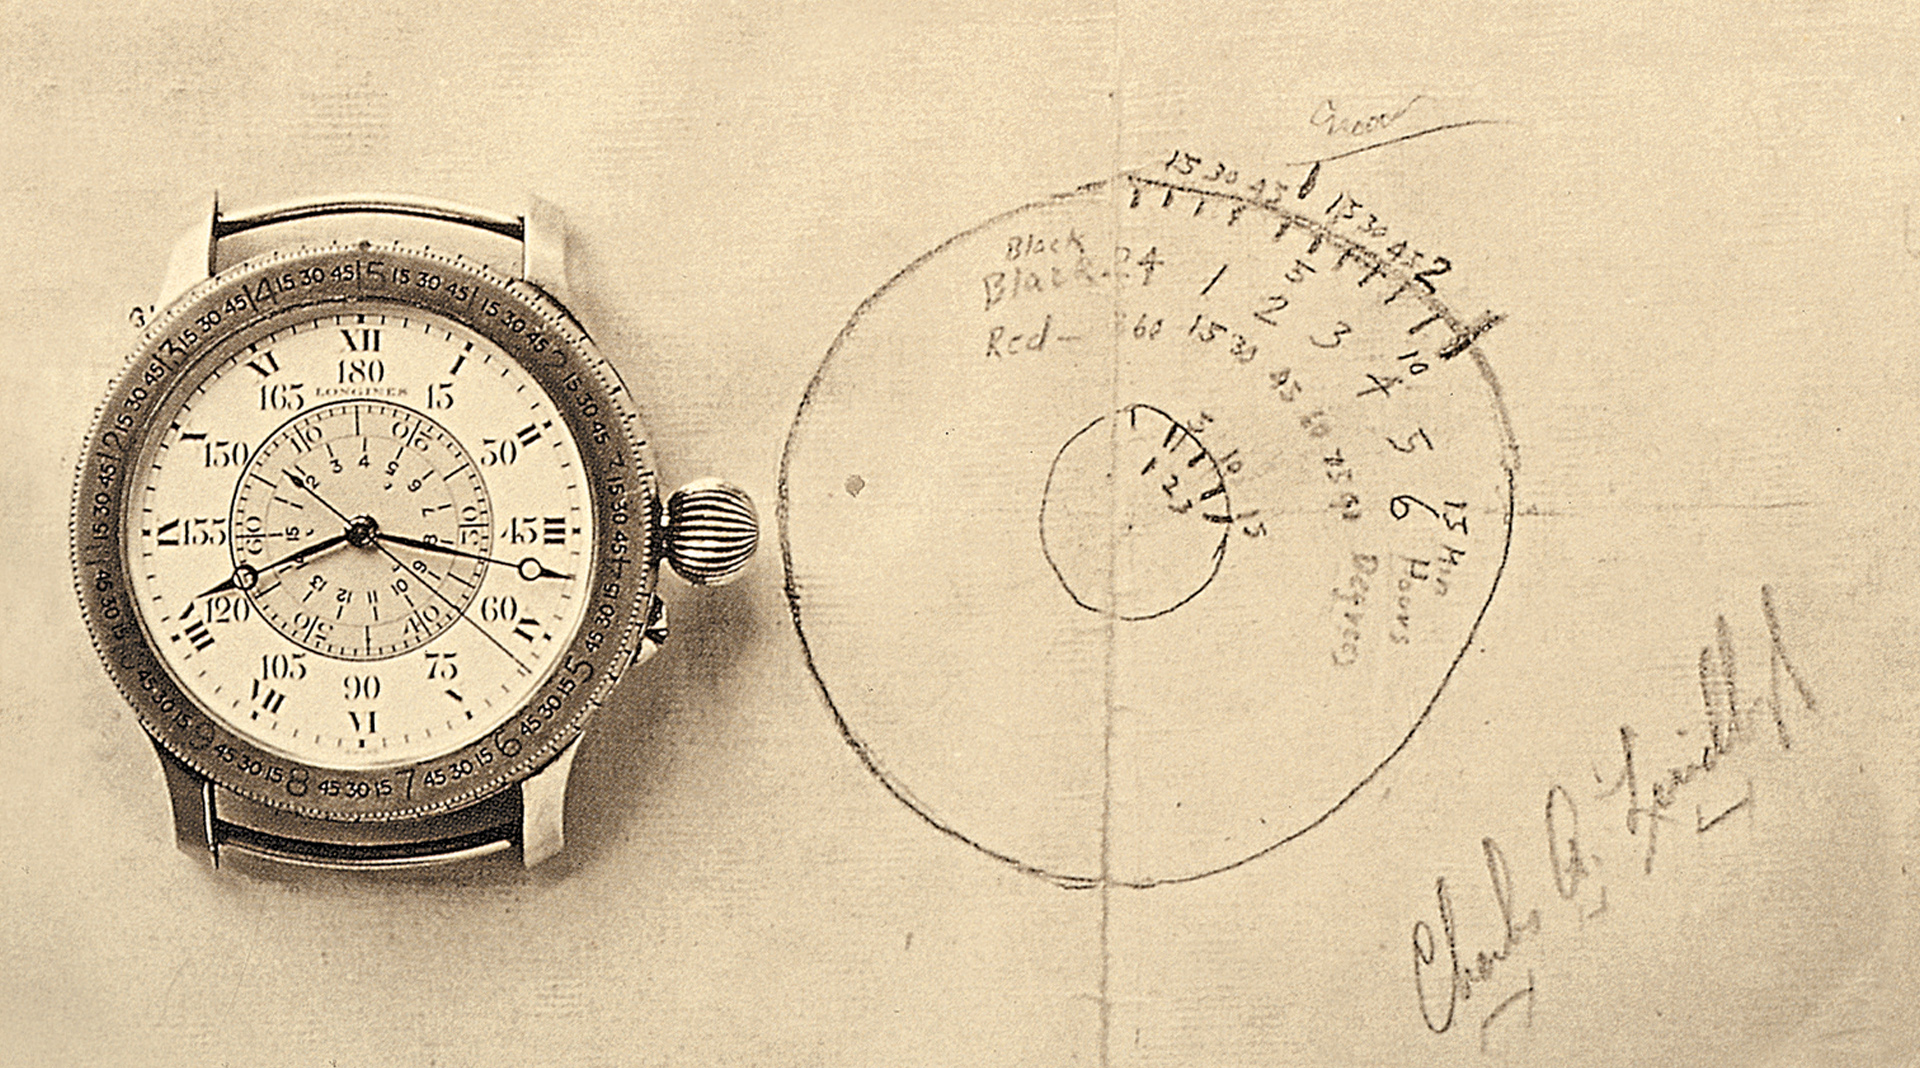 Longines Lindbergh Hour Angle Watch 1931 sketch